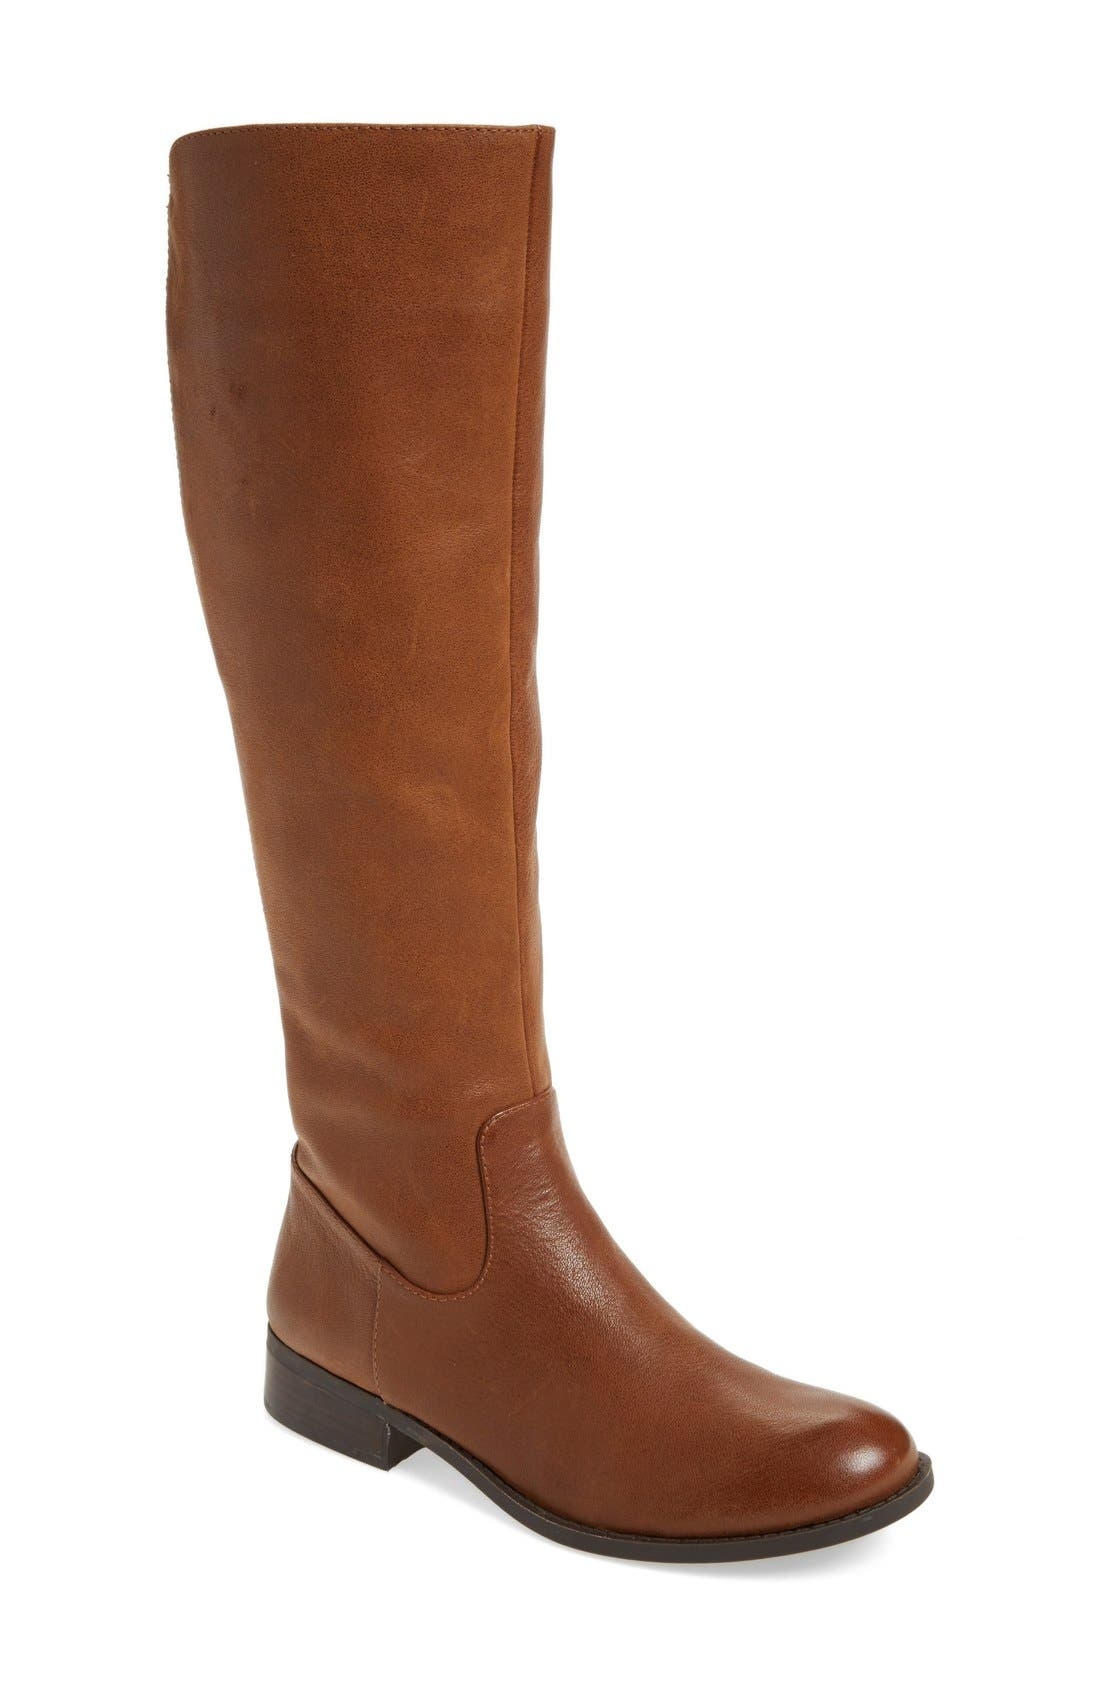 Alternate Image 1 Selected - Jessica Simpson 'Ressie' Riding Boot (Women)